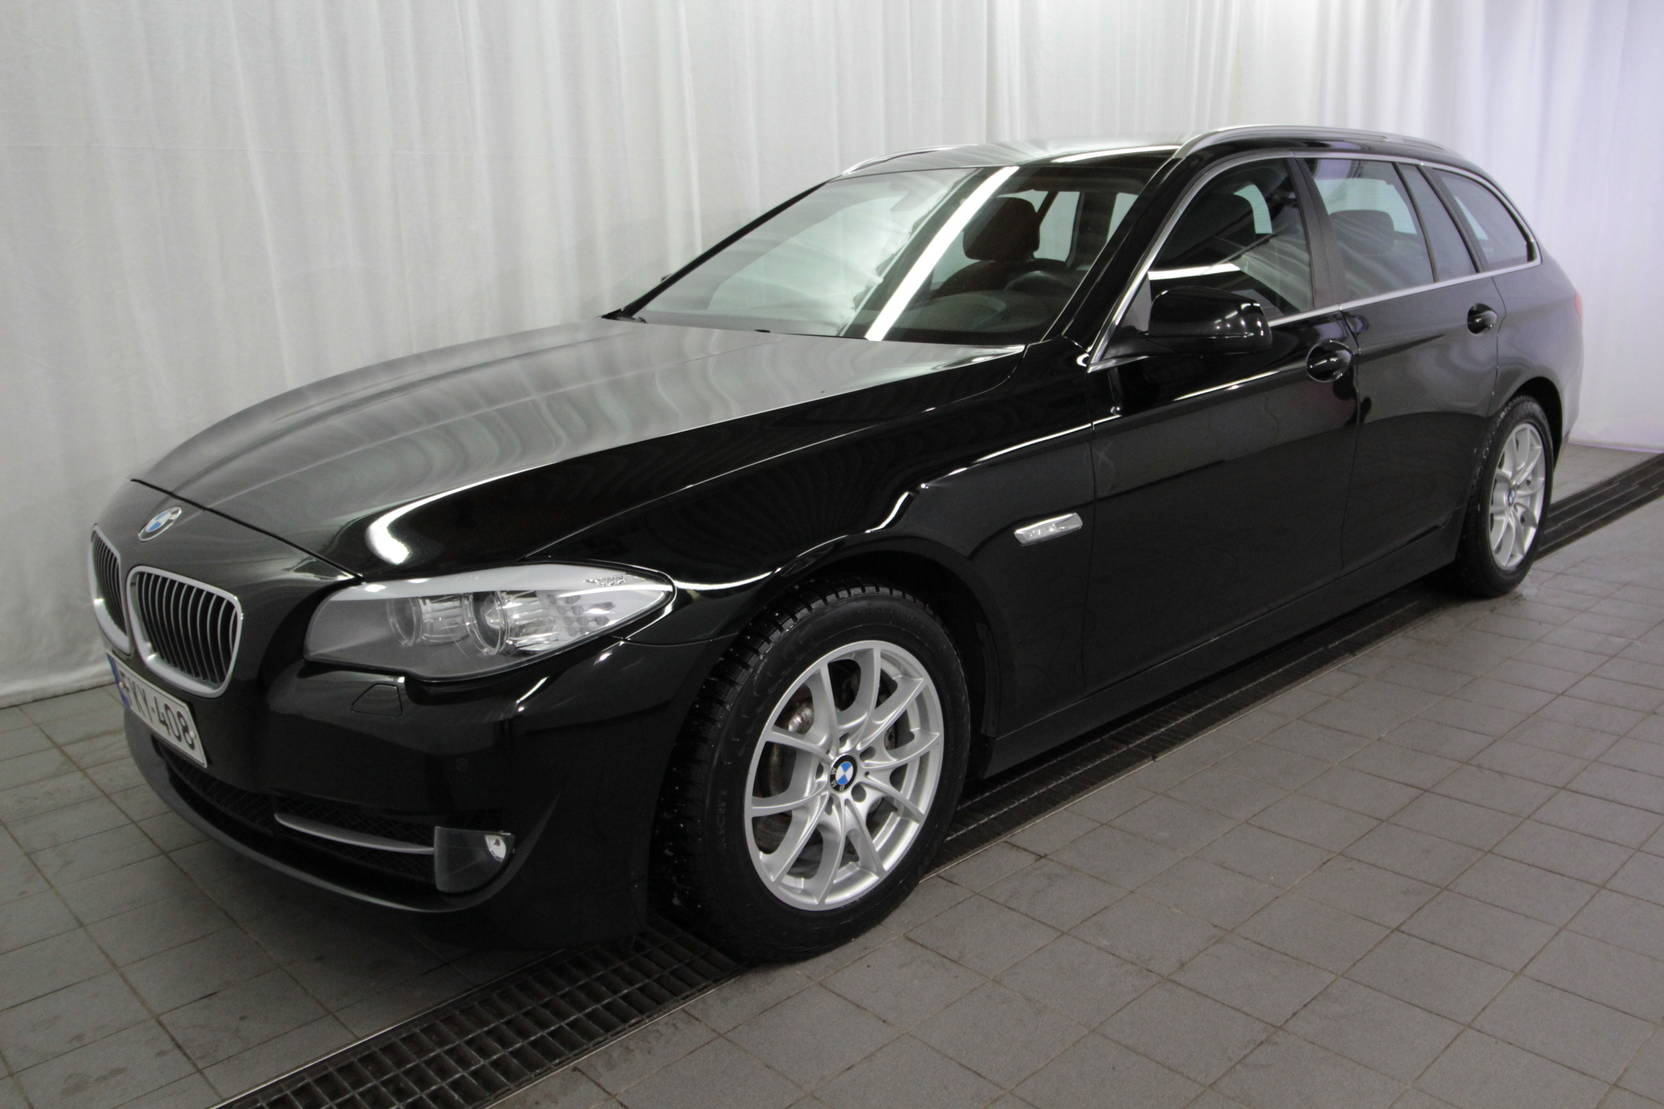 BMW 5 Serie Touring 525d Twinpower T A Limit Ed Xdrive detail1